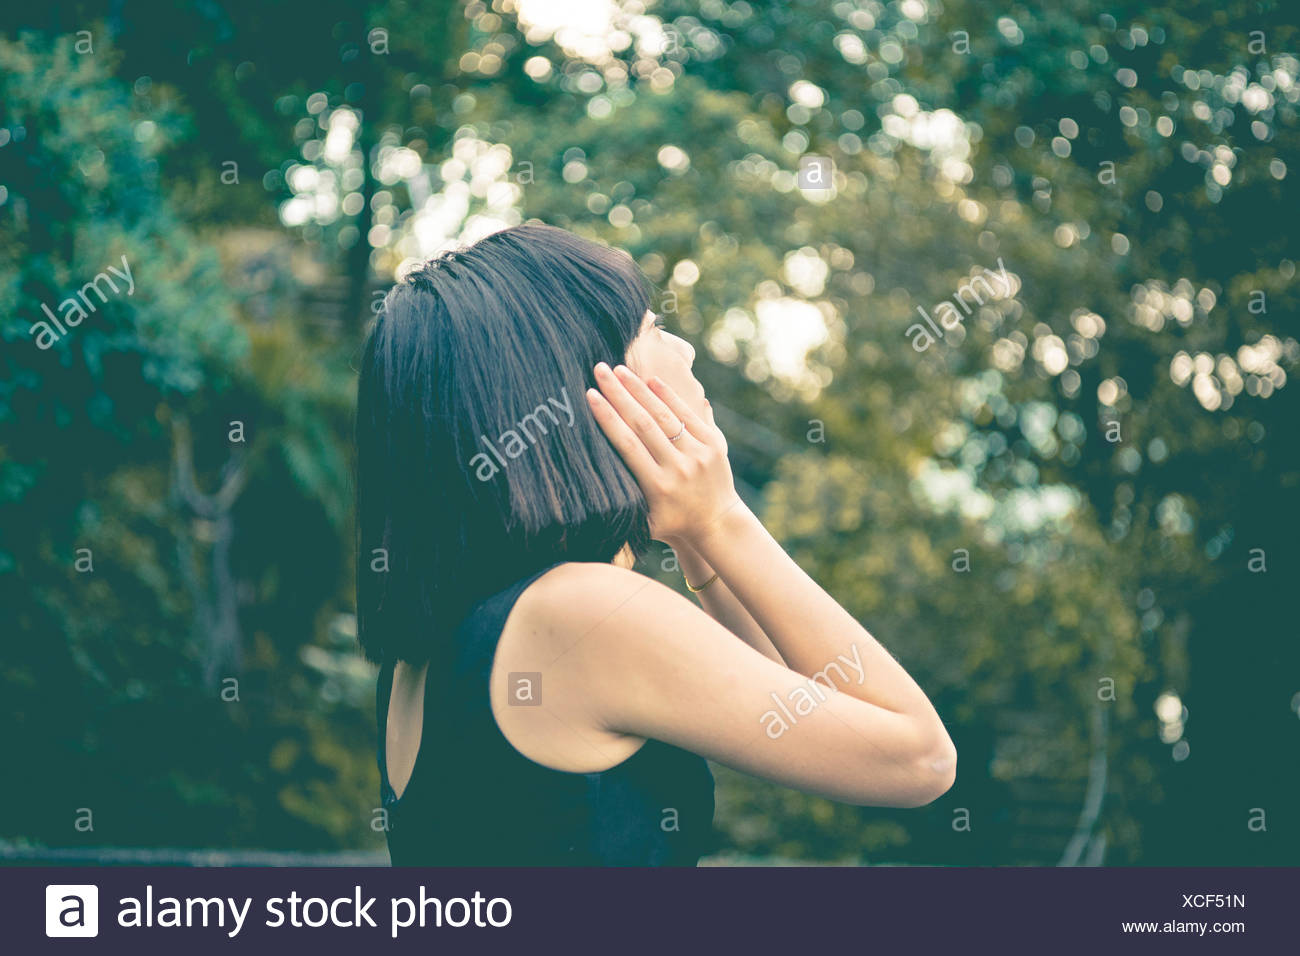 Close-Up Of Woman Looking Away Against Trees - Stock Image